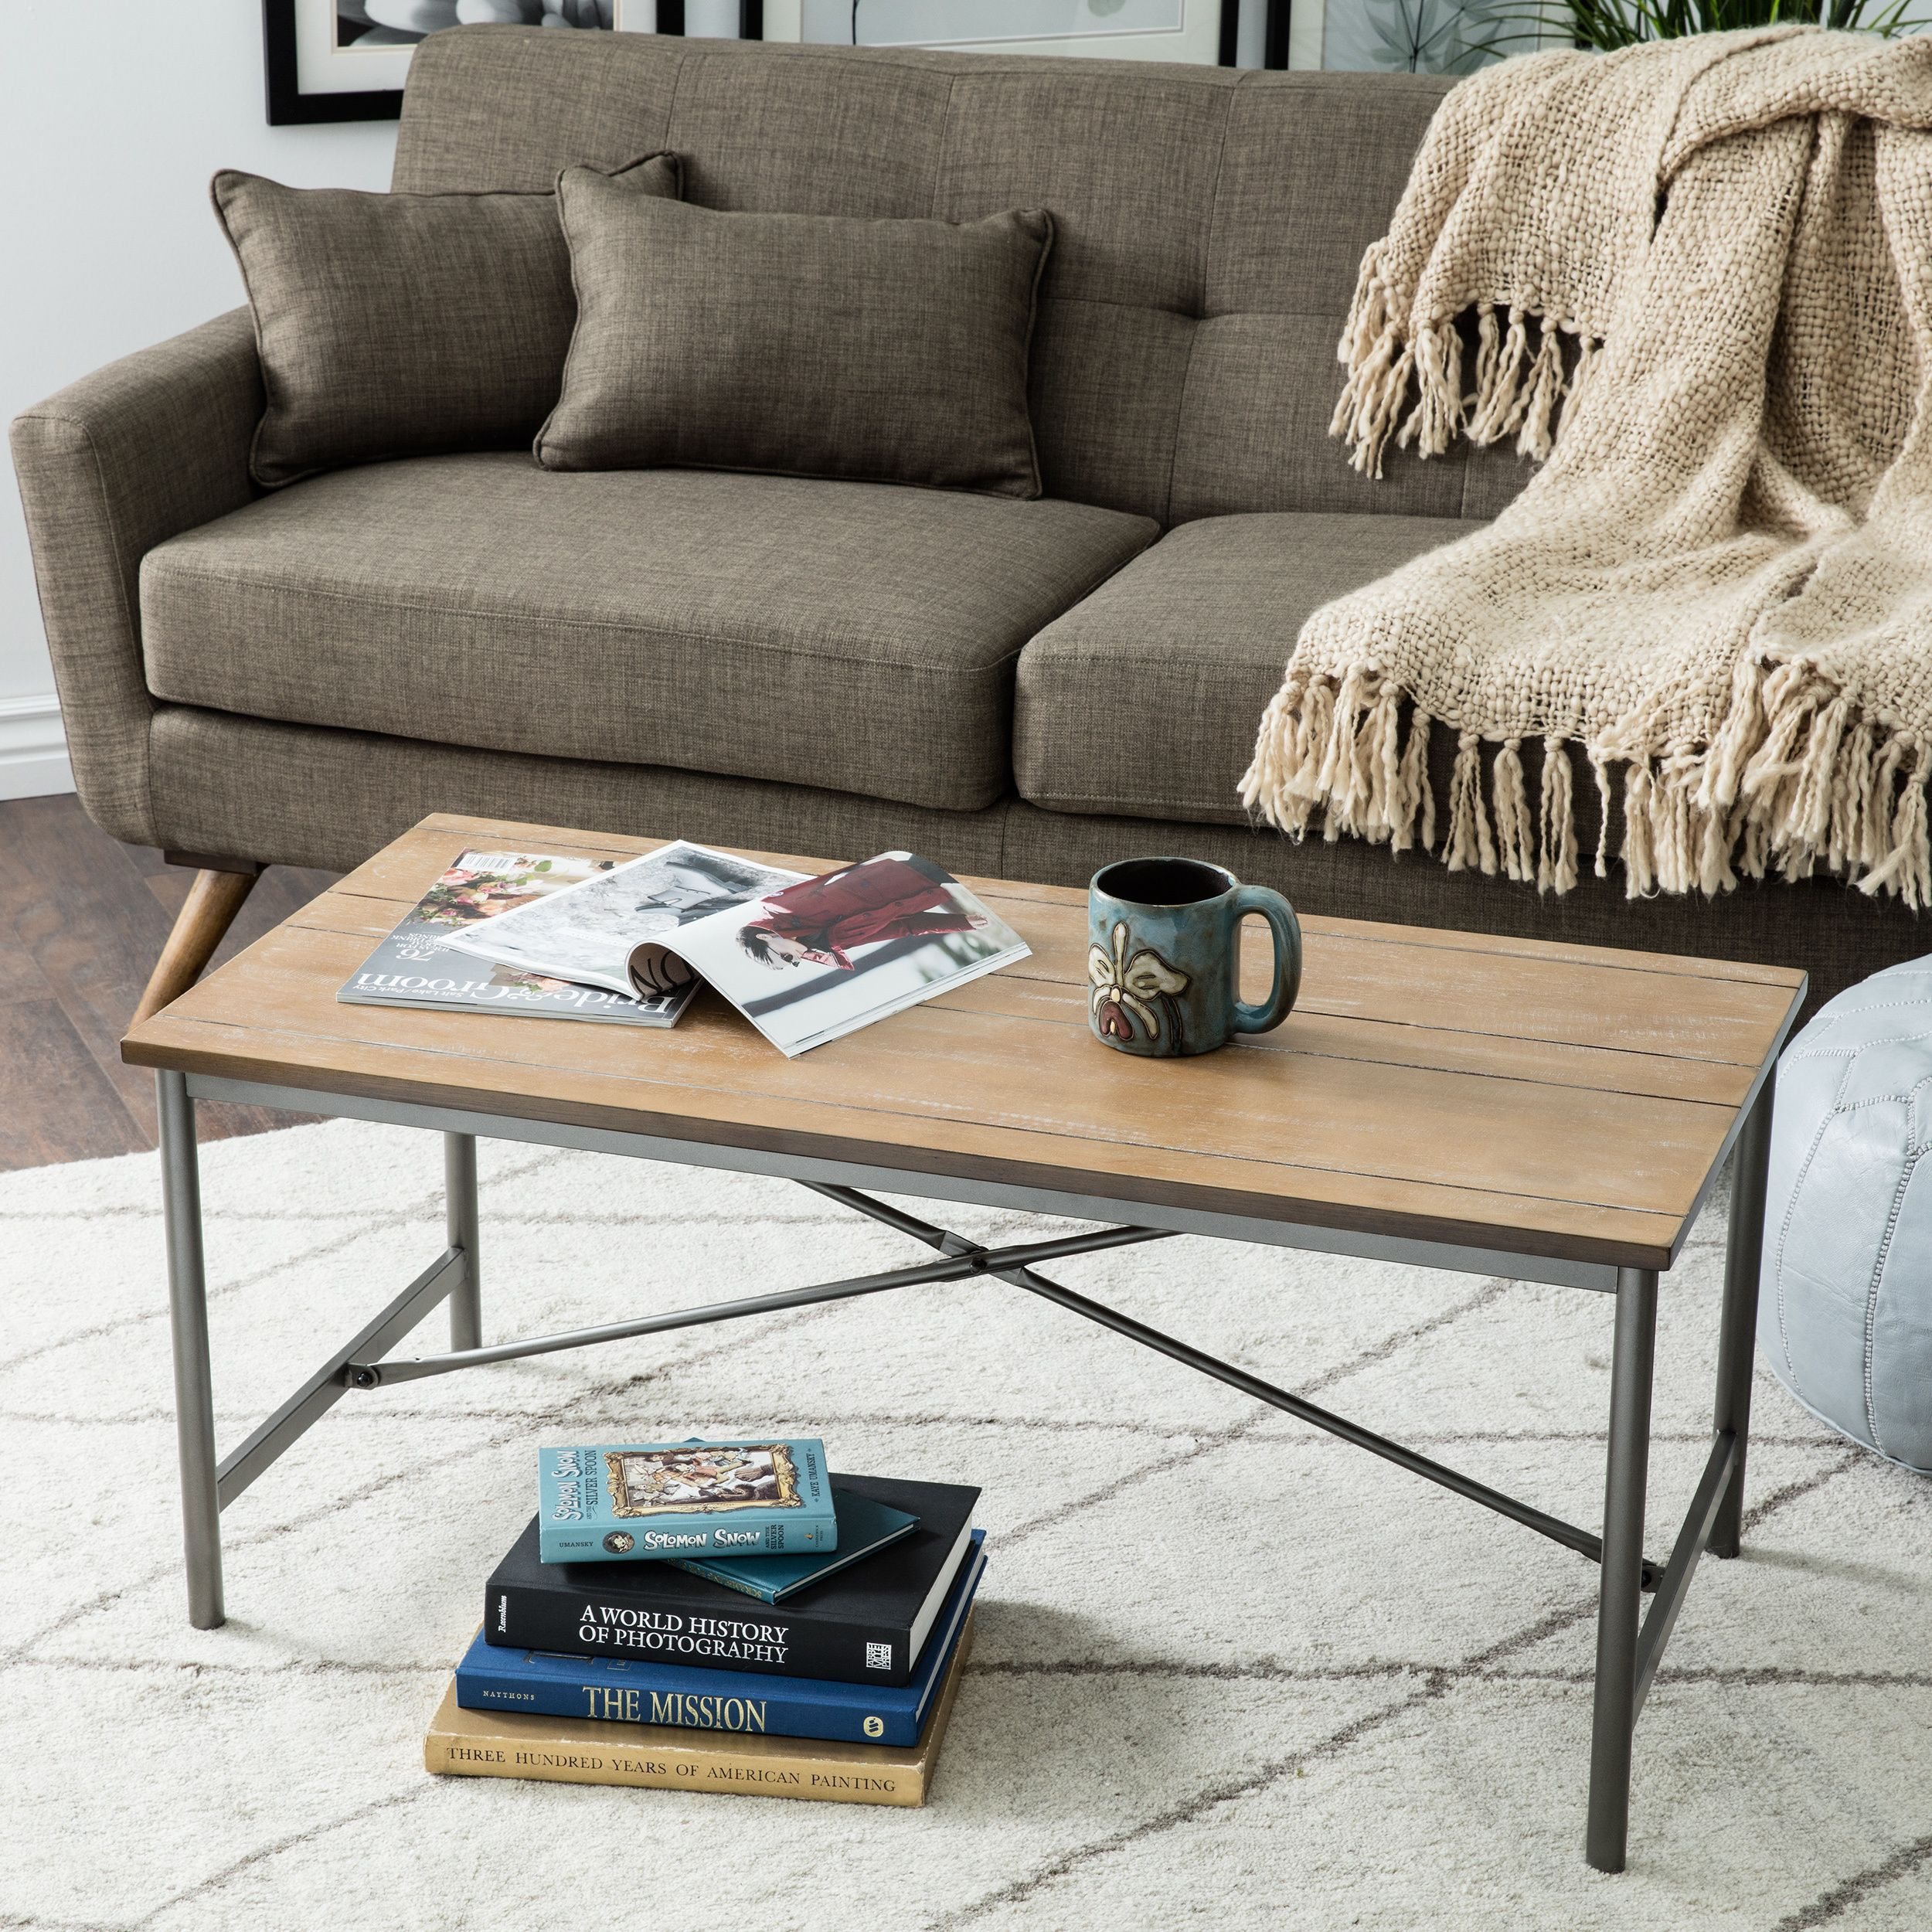 Genial Add This Rustic Grey Coffee Table To Your Living Room, And Make Room For  Entertaining And Relaxing. The Reclaimed Wood Surface Is Naturally  Distressed, ...